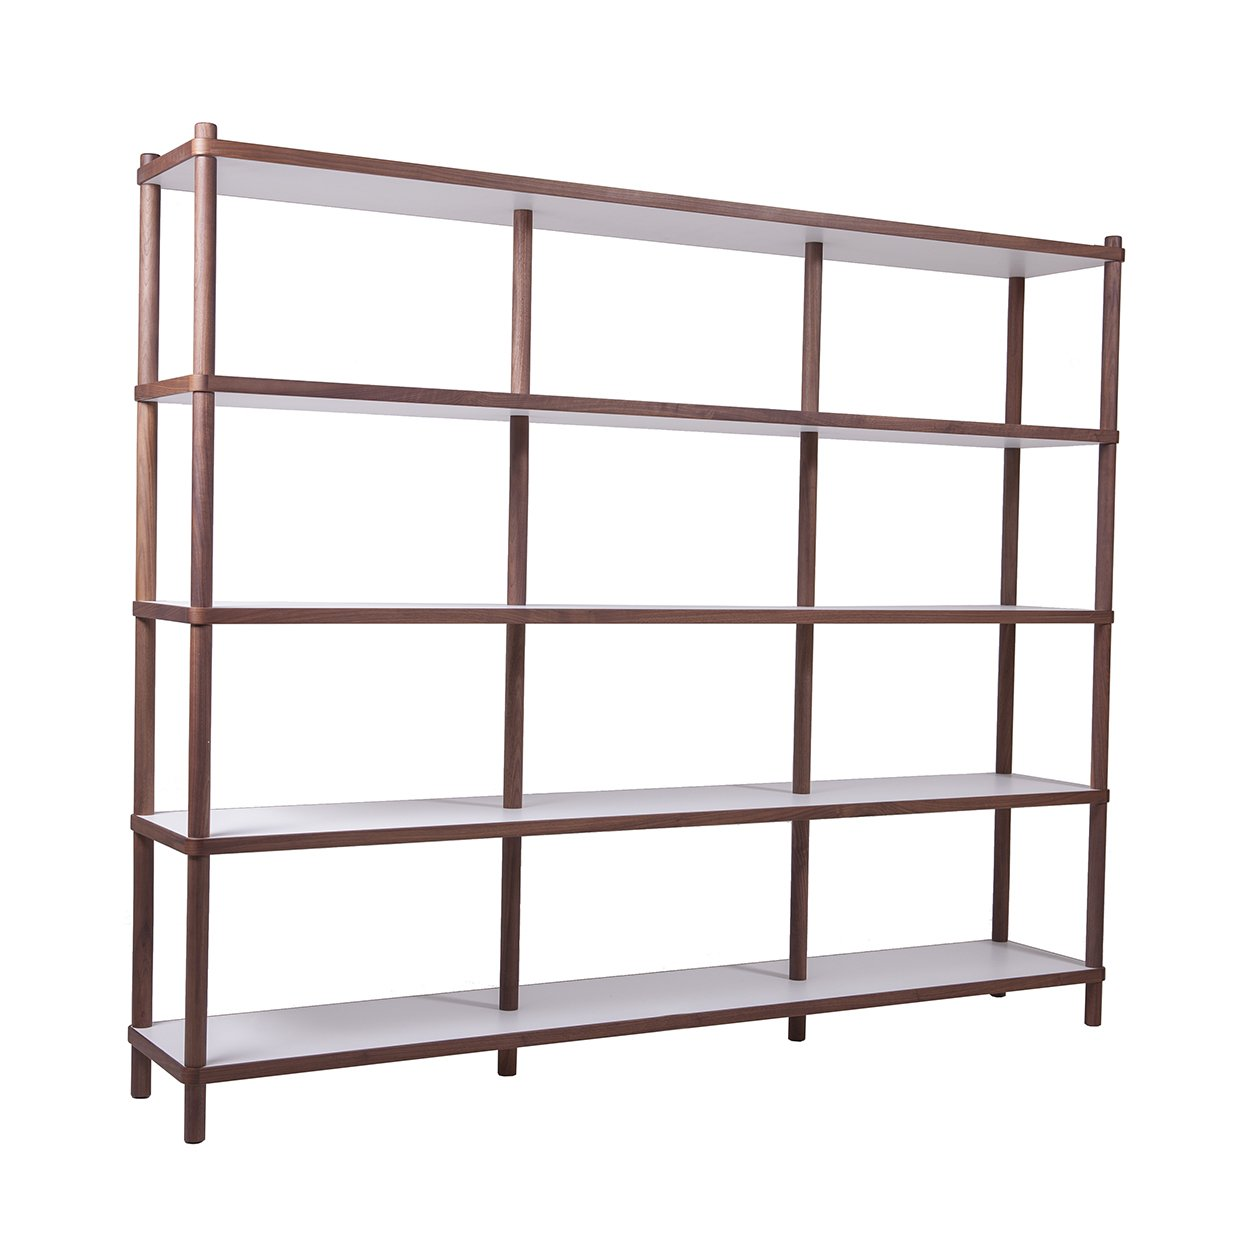 [FET0425WHITE] Sean Dix Bi-Color Shelves - Large